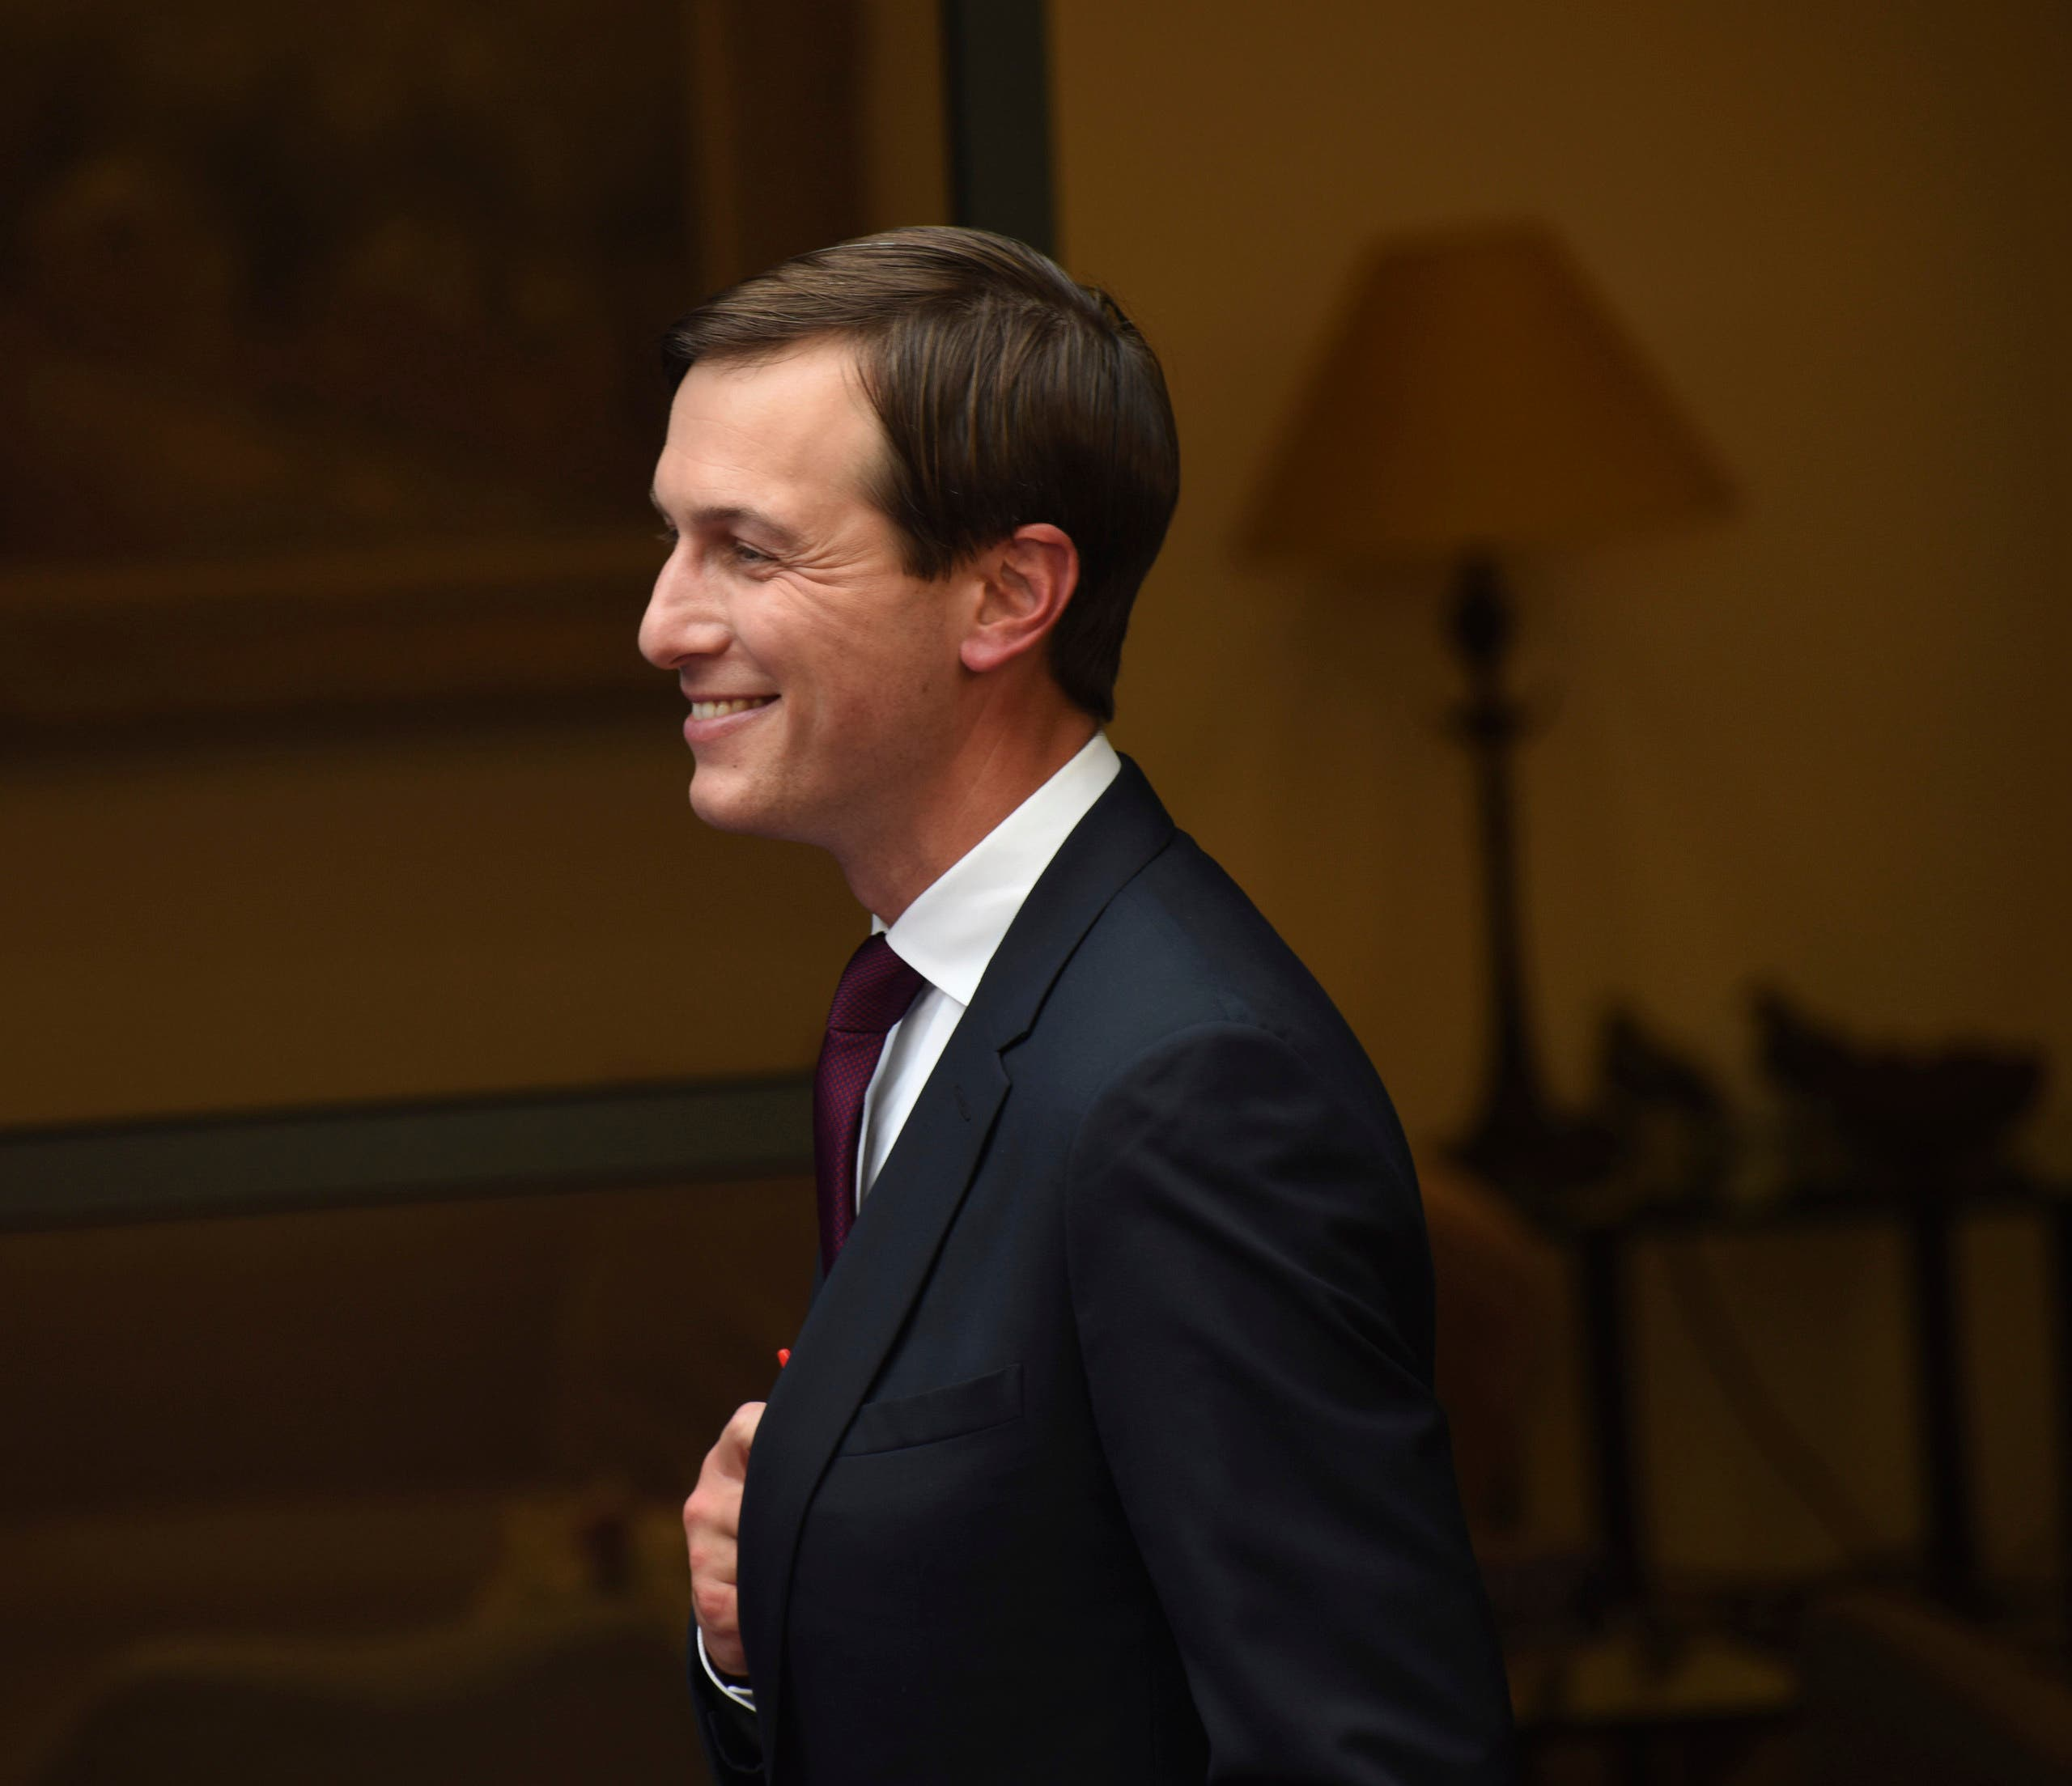 White House adviser Jared Kushner smiles after giving joint statements with Israeli Prime Minister Benjamin Netanyahu to the press about the Israeli-United Arab Emirates peace accords, in Jerusalem on Aug. 30, 2020. (AP)